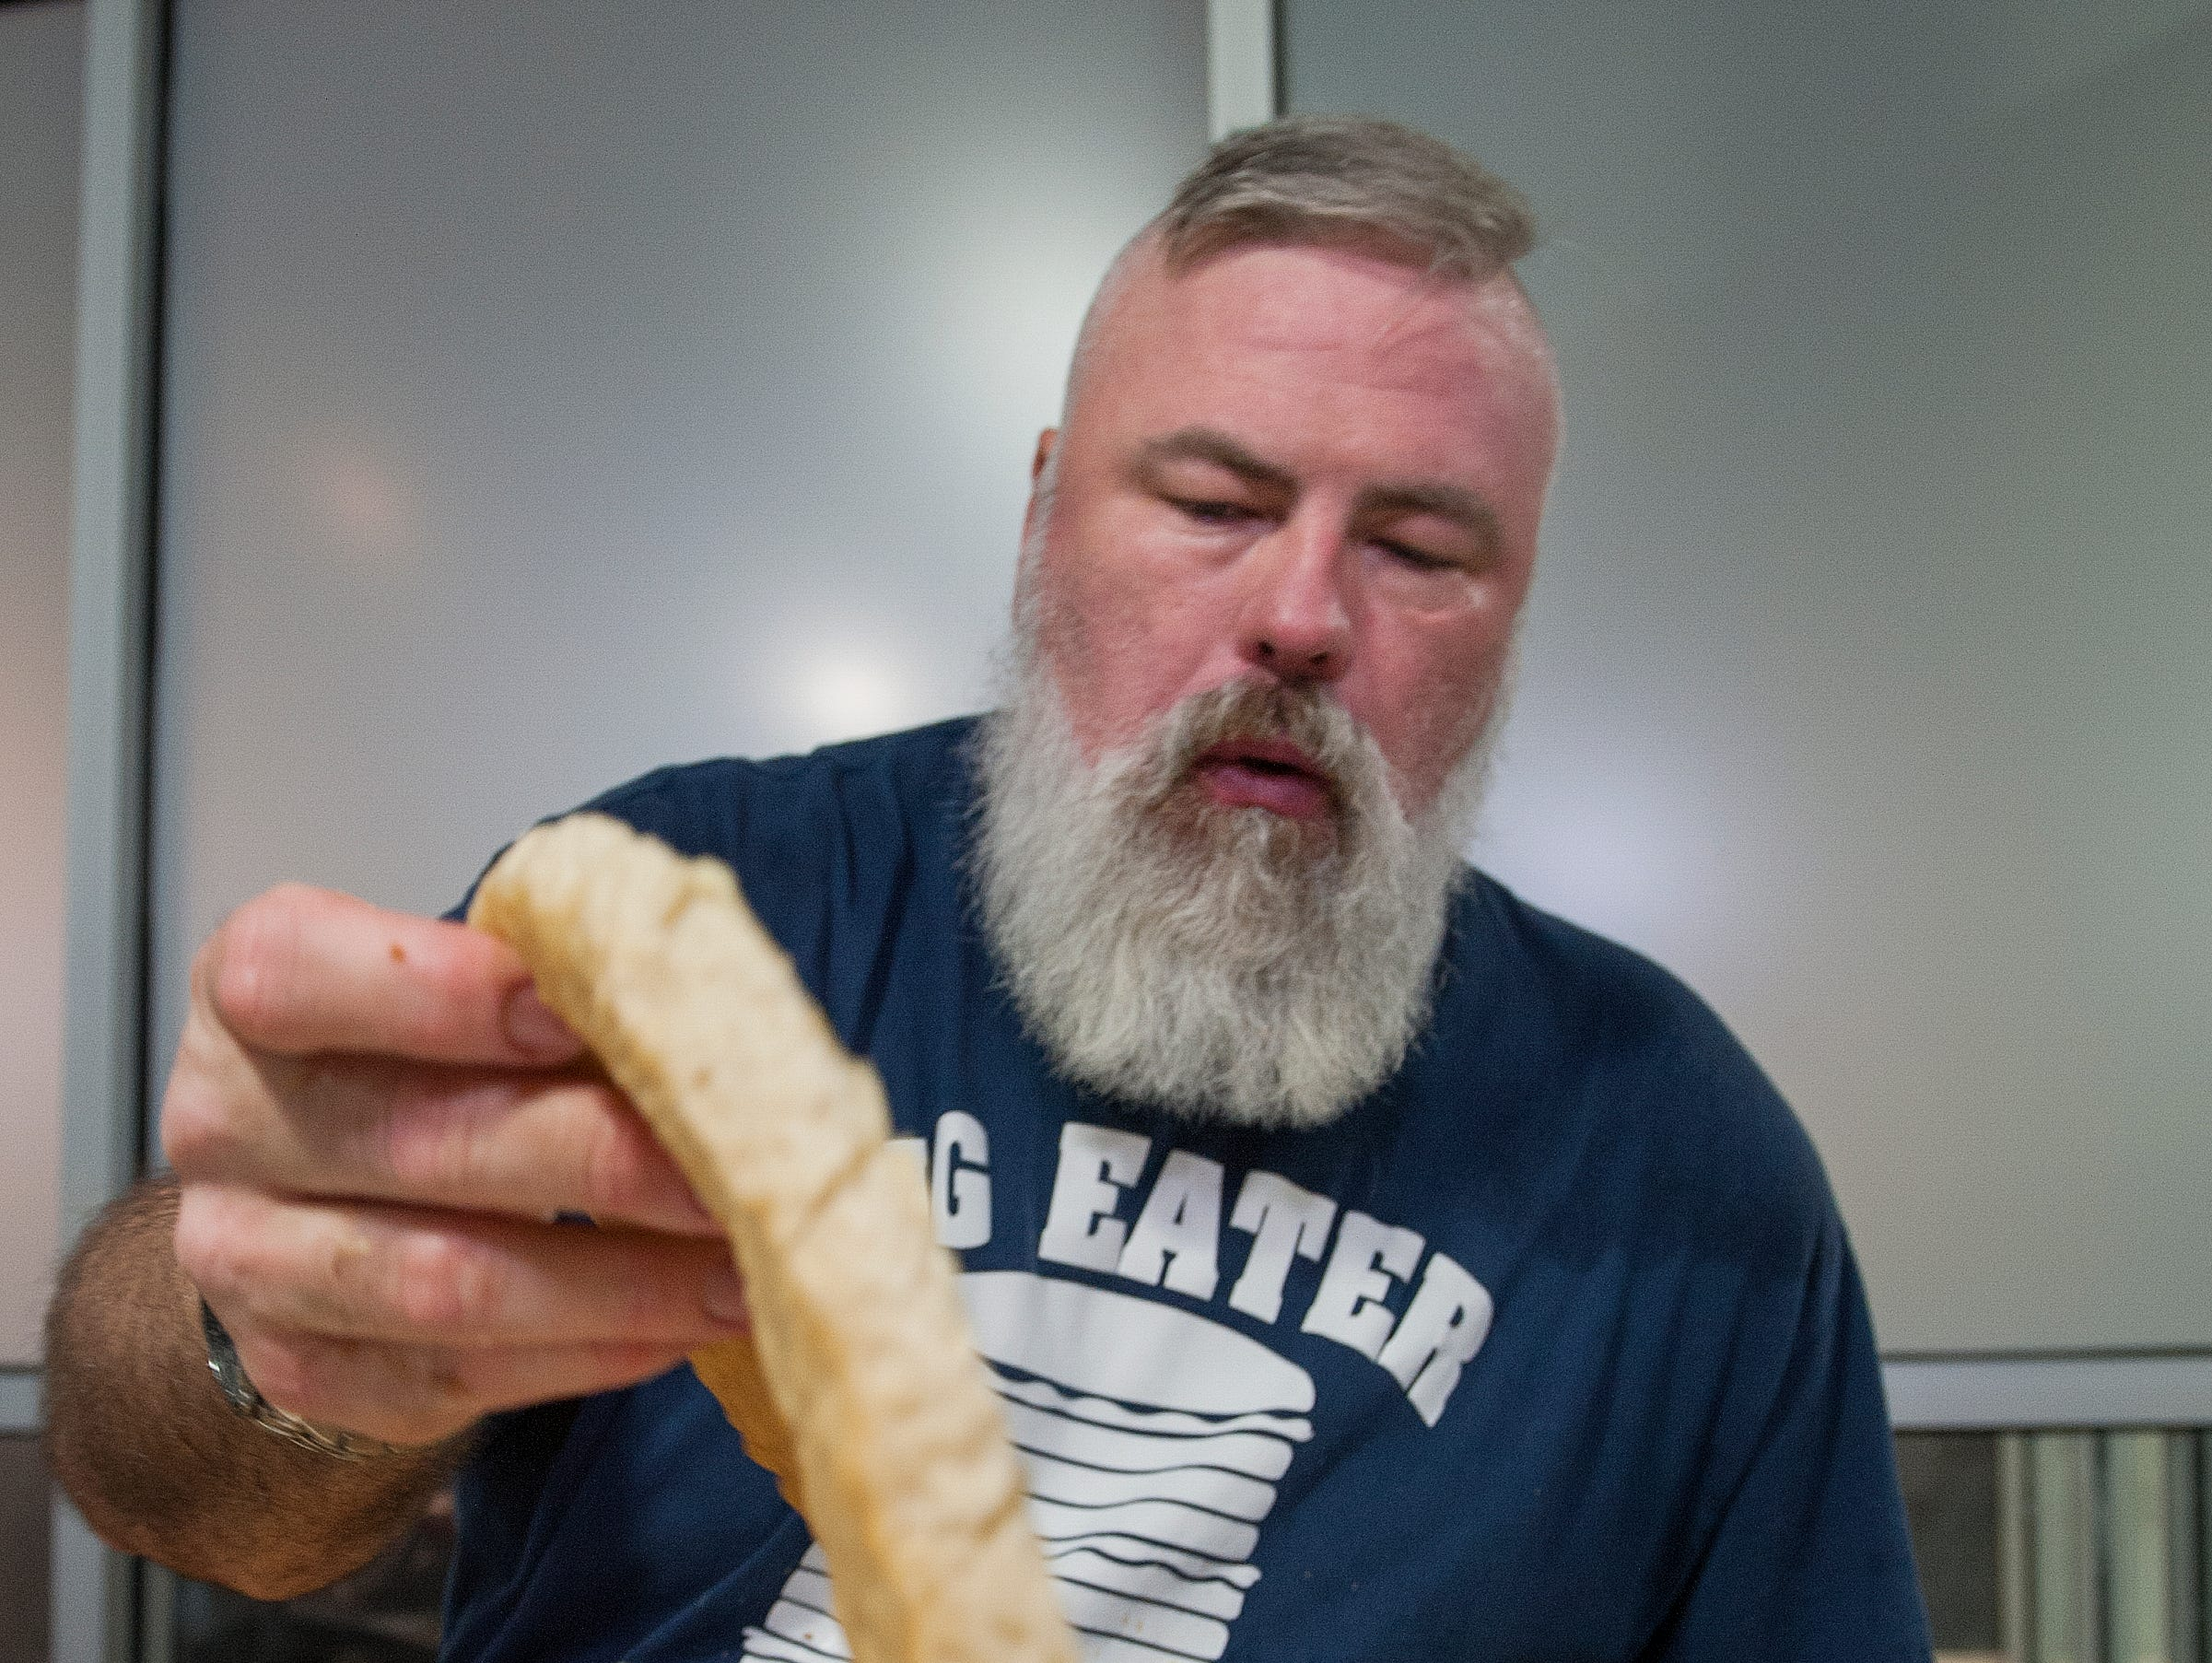 Nothing but the bottom of the 10-inch hamburger bun remains to be eaten for Mike Whities of Brandon, also known as Big Eater Mike, to win the Rooster's Stupid Burger Challenge at the Fondren restaurant on Friday, Feb. 2, 2019. Big Eater Mike went on to win the challenge, eating 6 pounds, 8 ounces of burger and fries within 30 minutes.